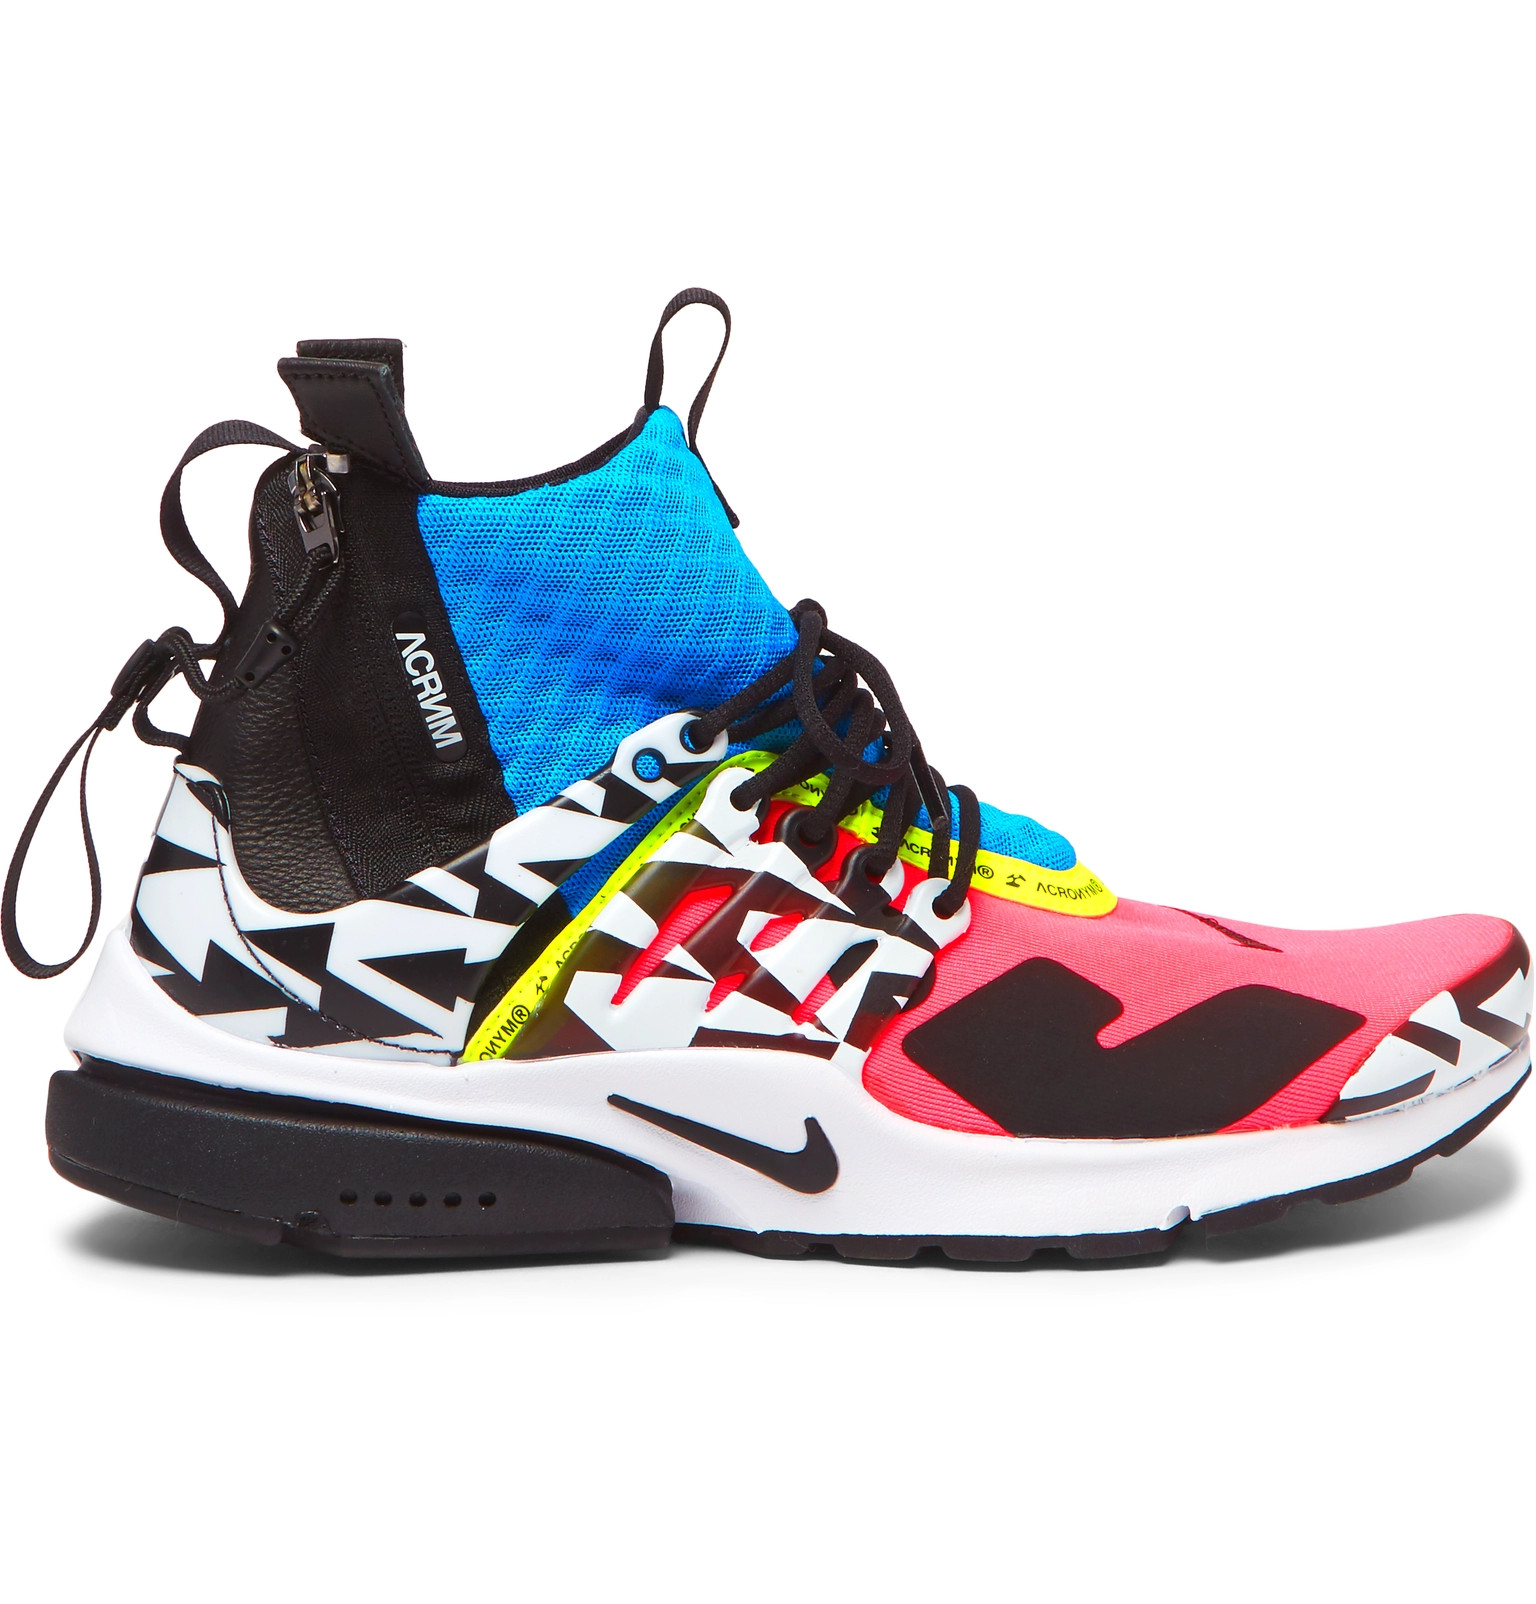 0b5395425a4e7f The New ACRONYM x Nike Air Presto Is Here (Briefly)